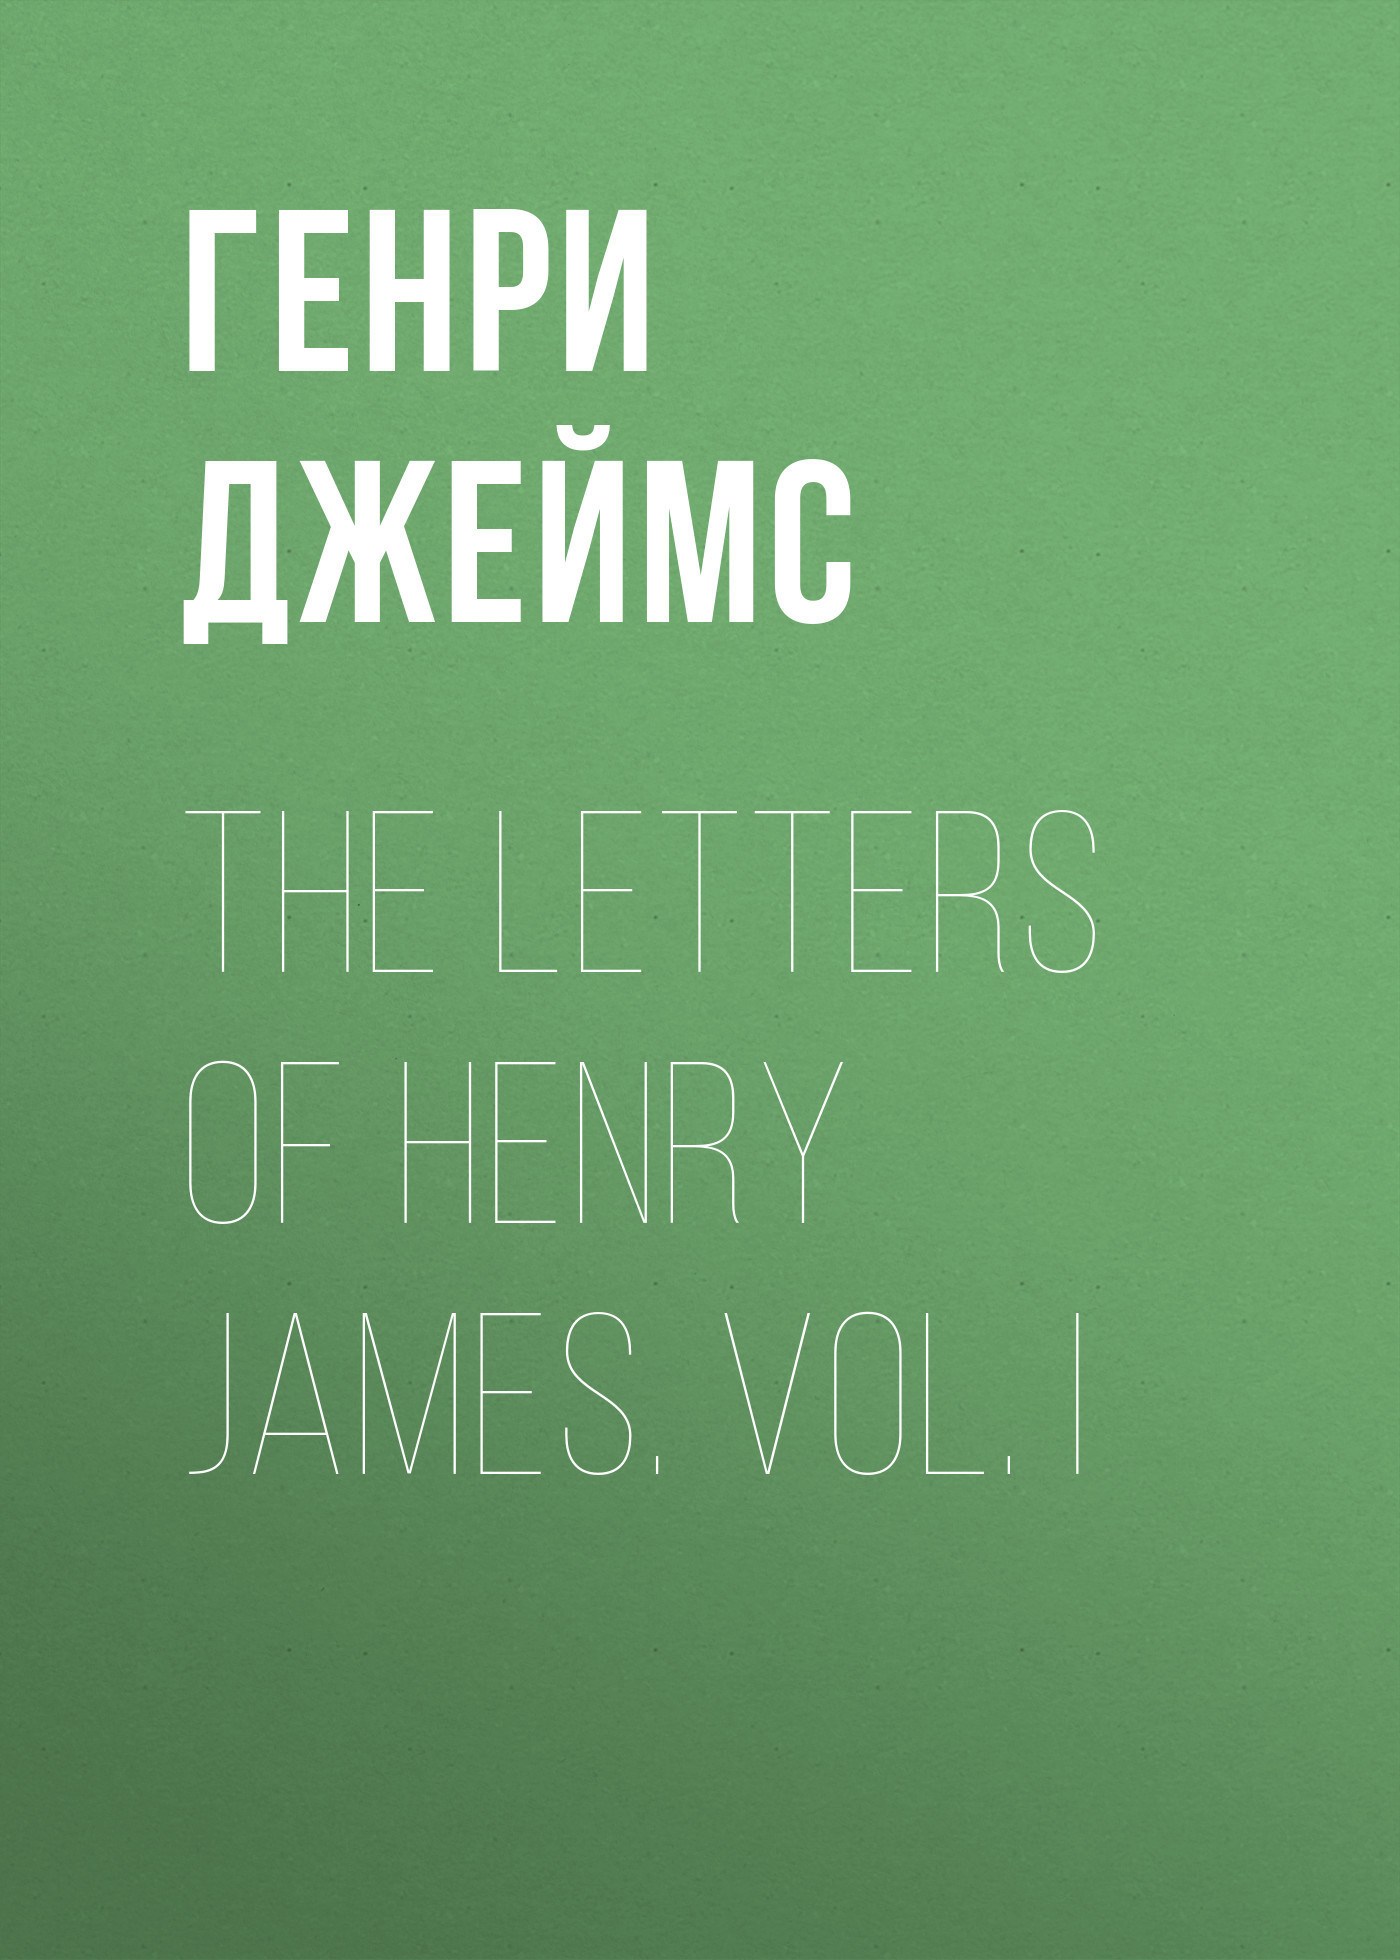 Генри Джеймс The Letters of Henry James. Vol. I цена